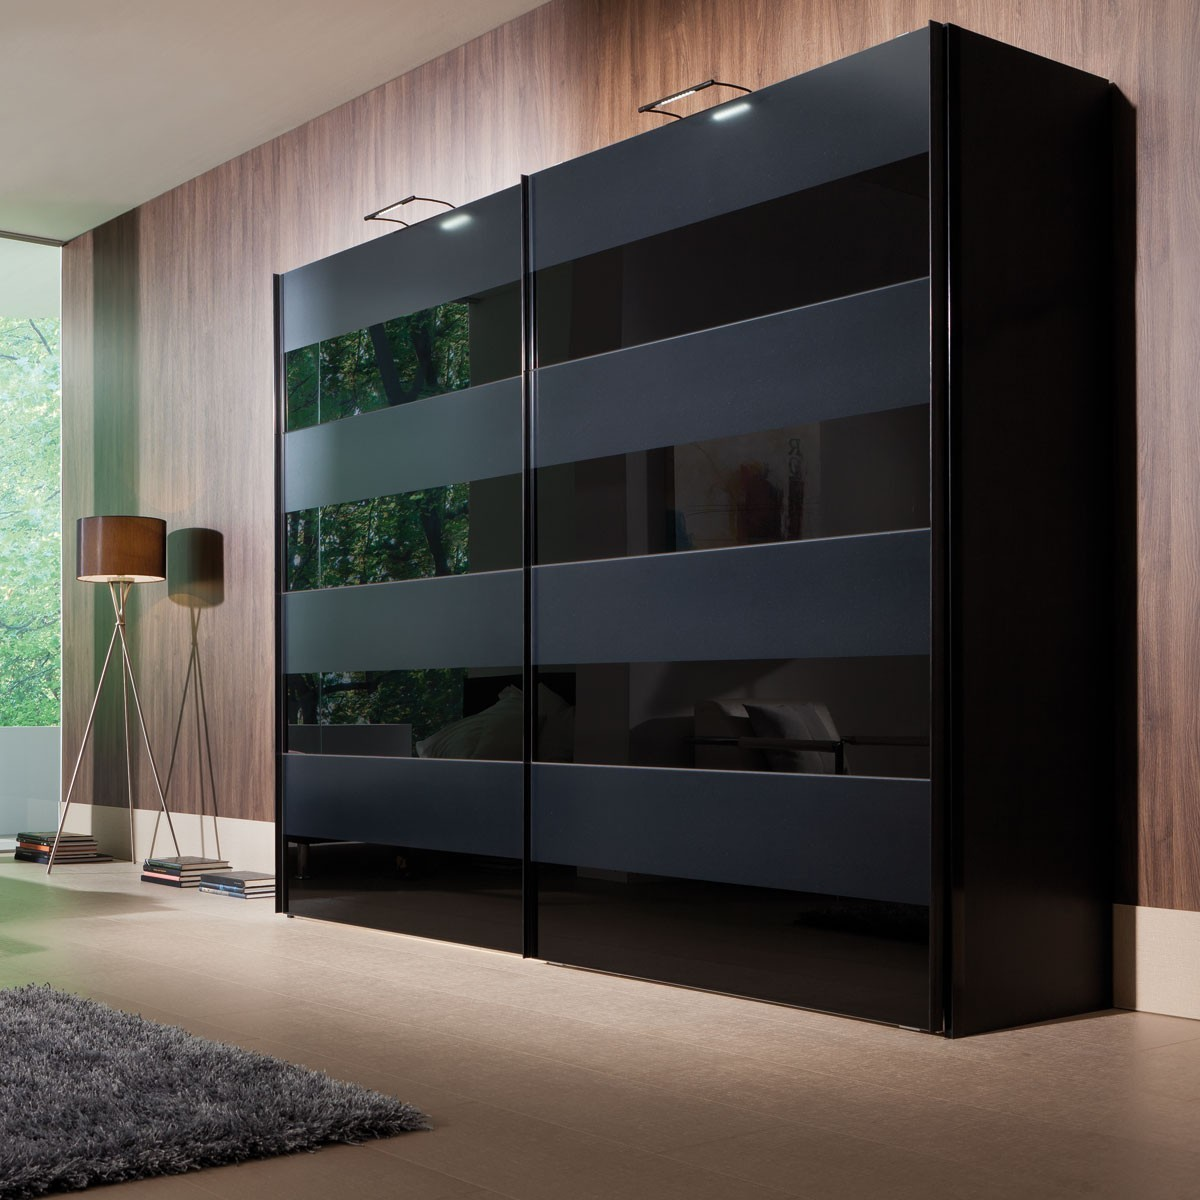 schwebet renschrank kleiderschrank boston schwarz glas. Black Bedroom Furniture Sets. Home Design Ideas